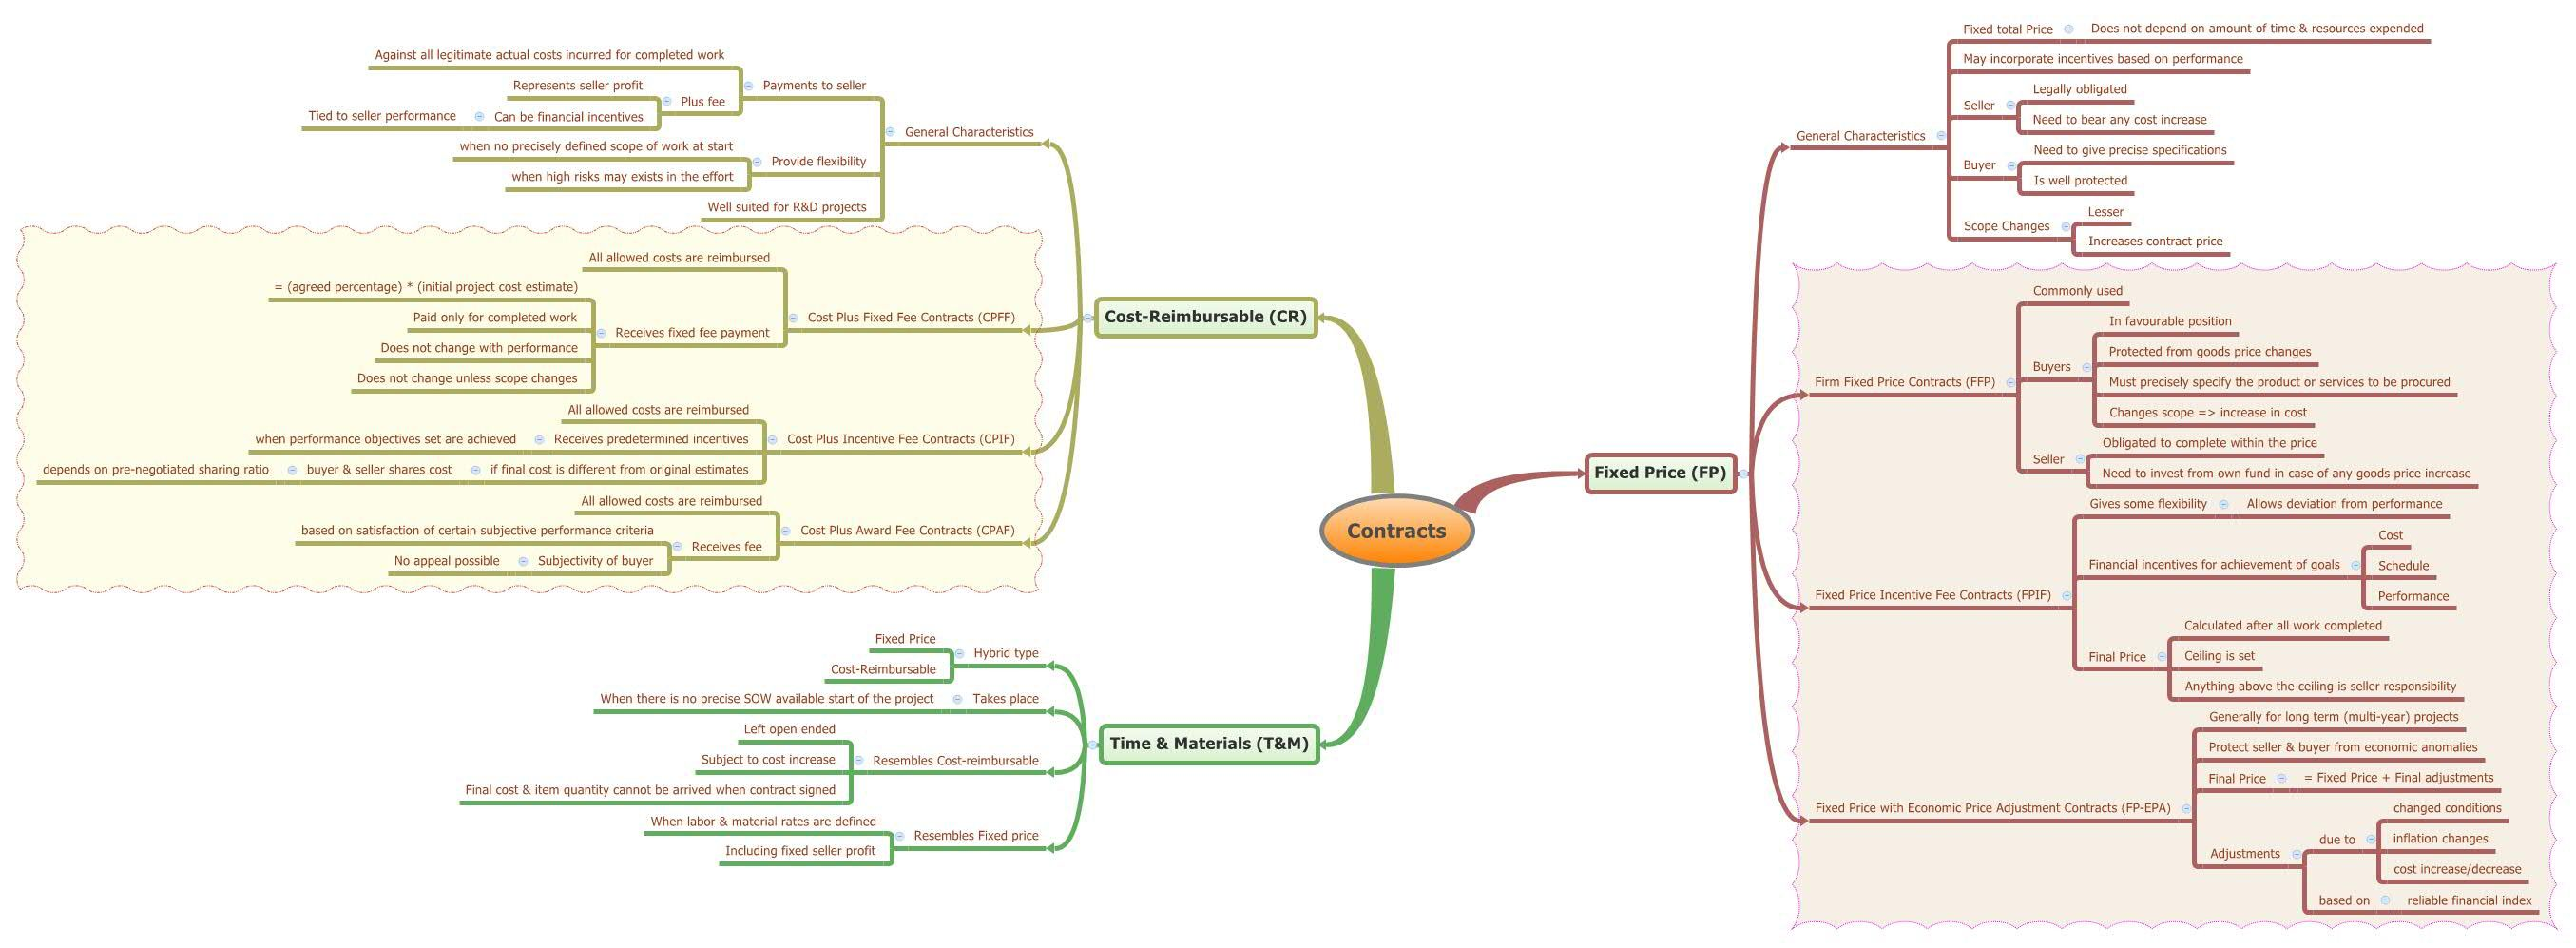 Mind map of pmp exam plan procurement management types of mind map of pmp exam plan procurement management types of contracts mind map 1betcityfo Image collections